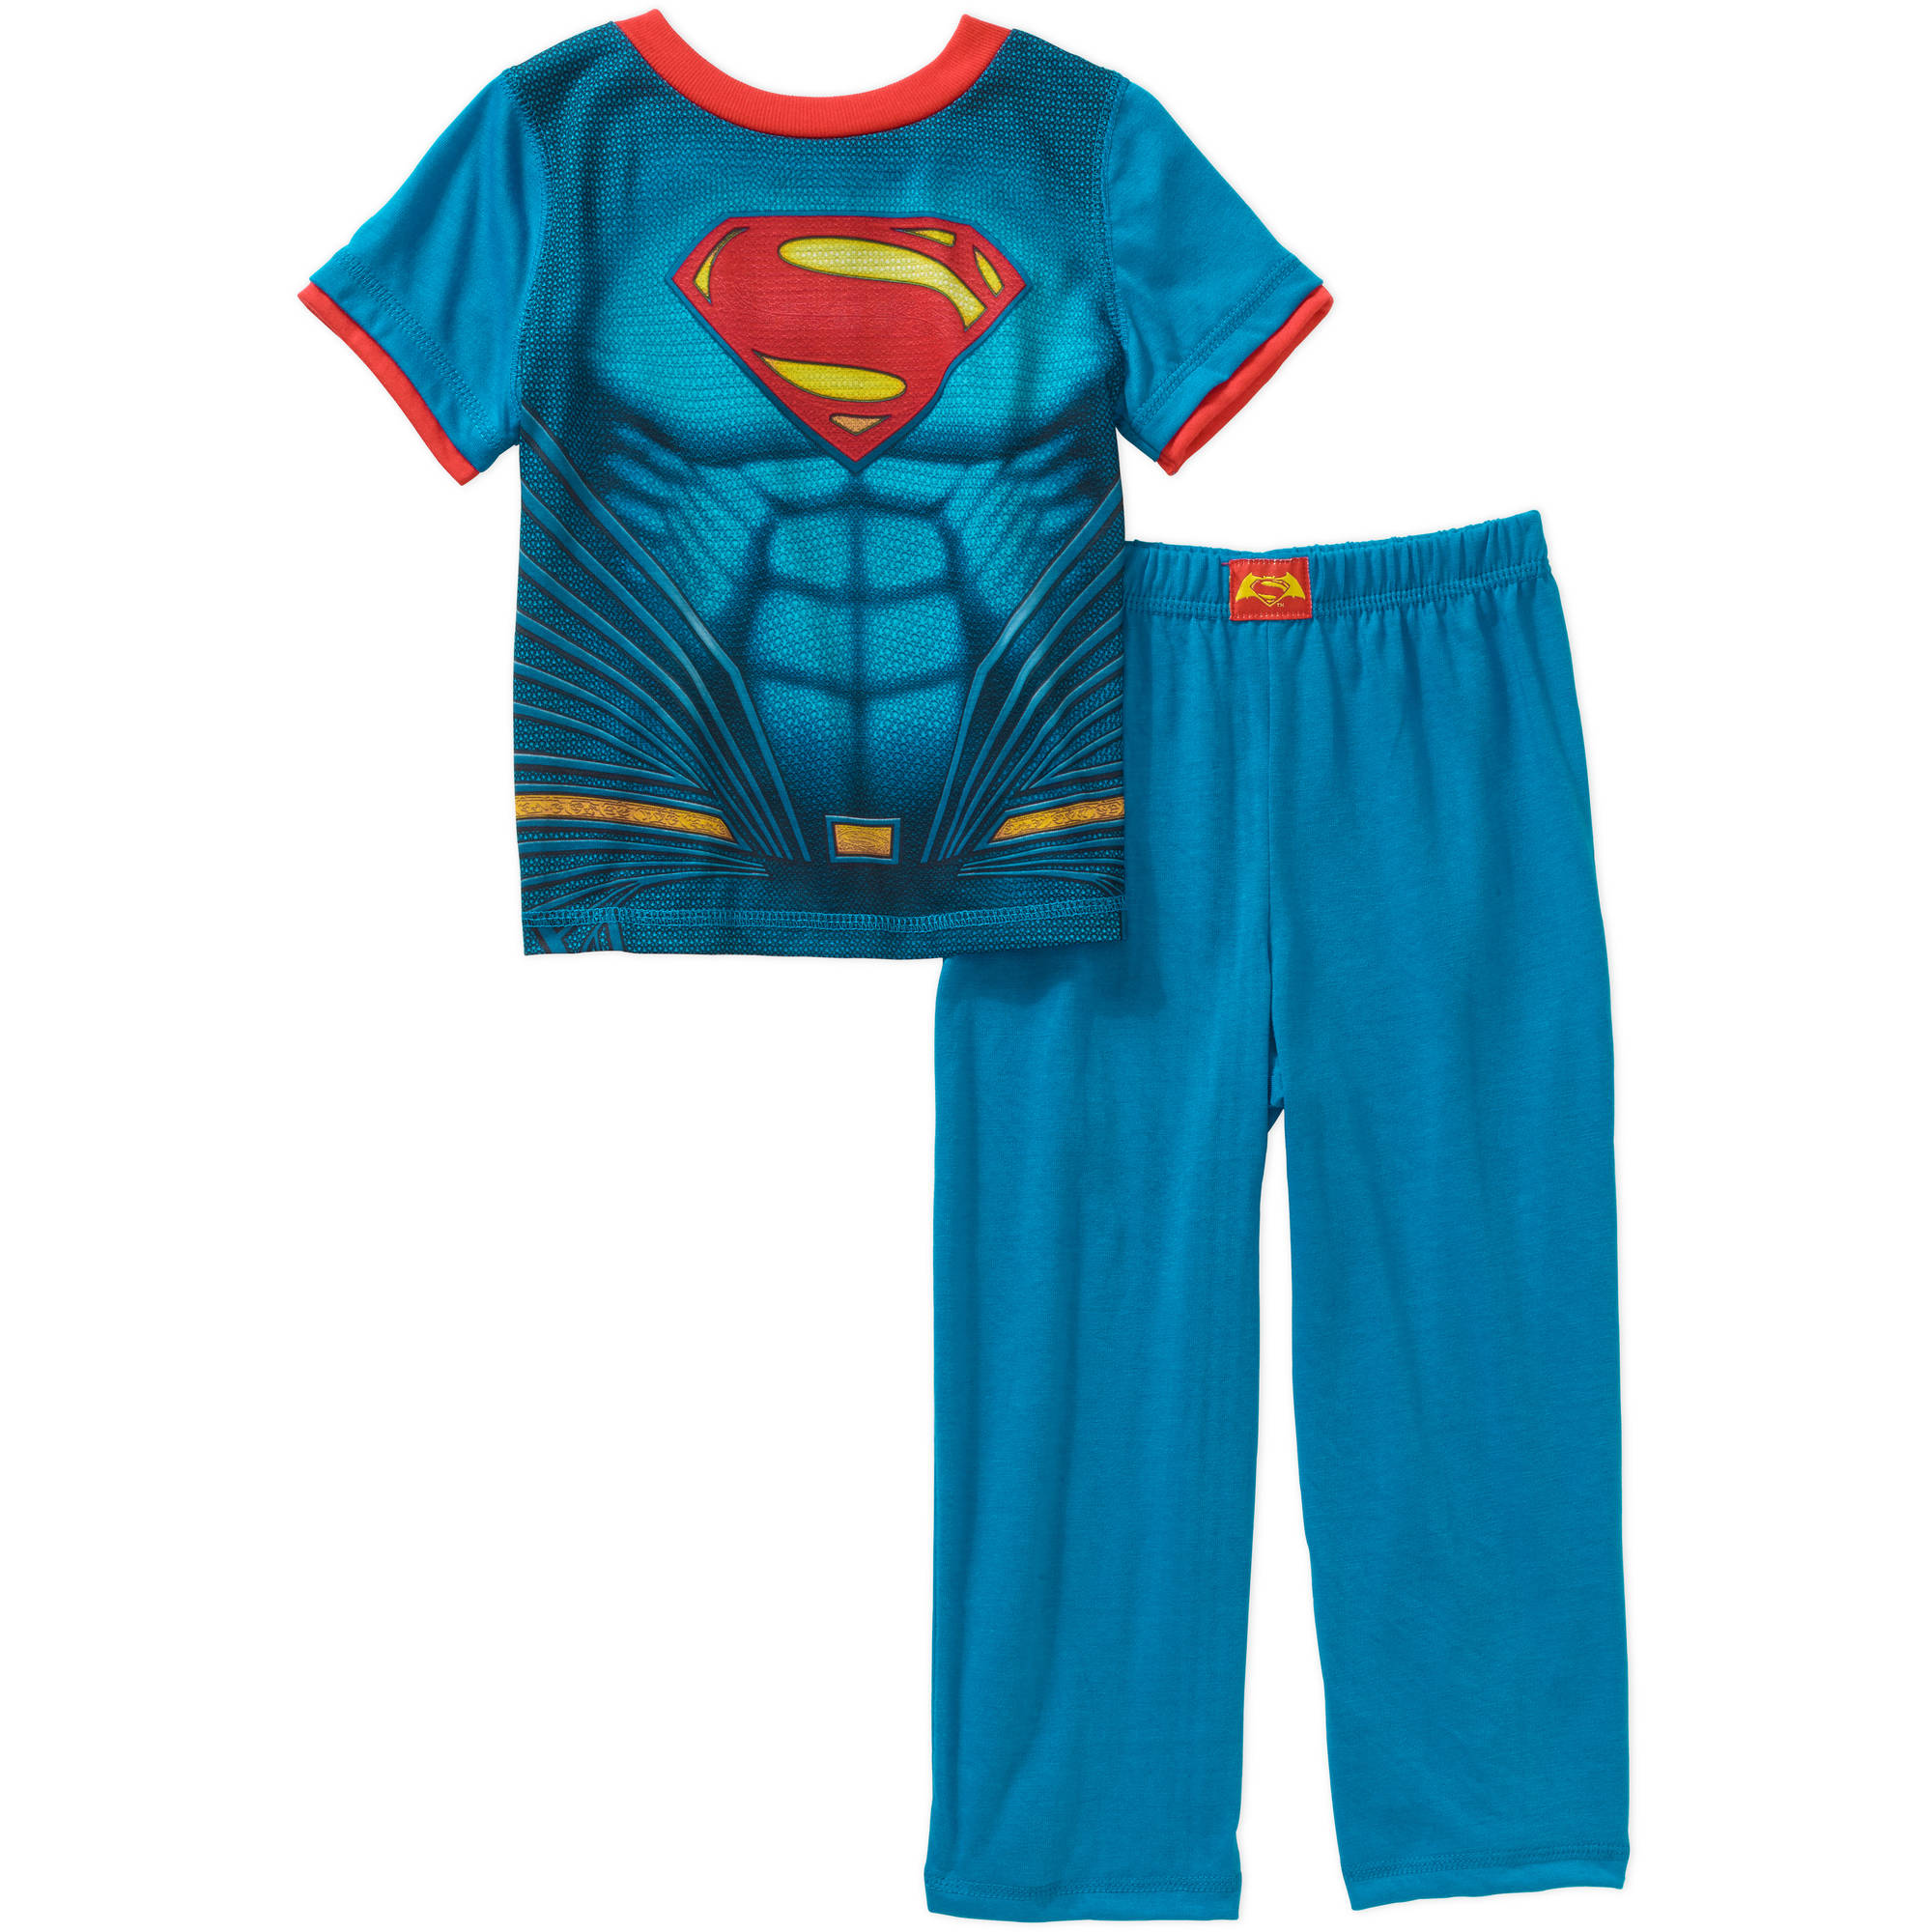 Superman Toddler Boys' Short Sleeve Caped 3-Piece Pajama Sleepwear Set - Online Exclusive